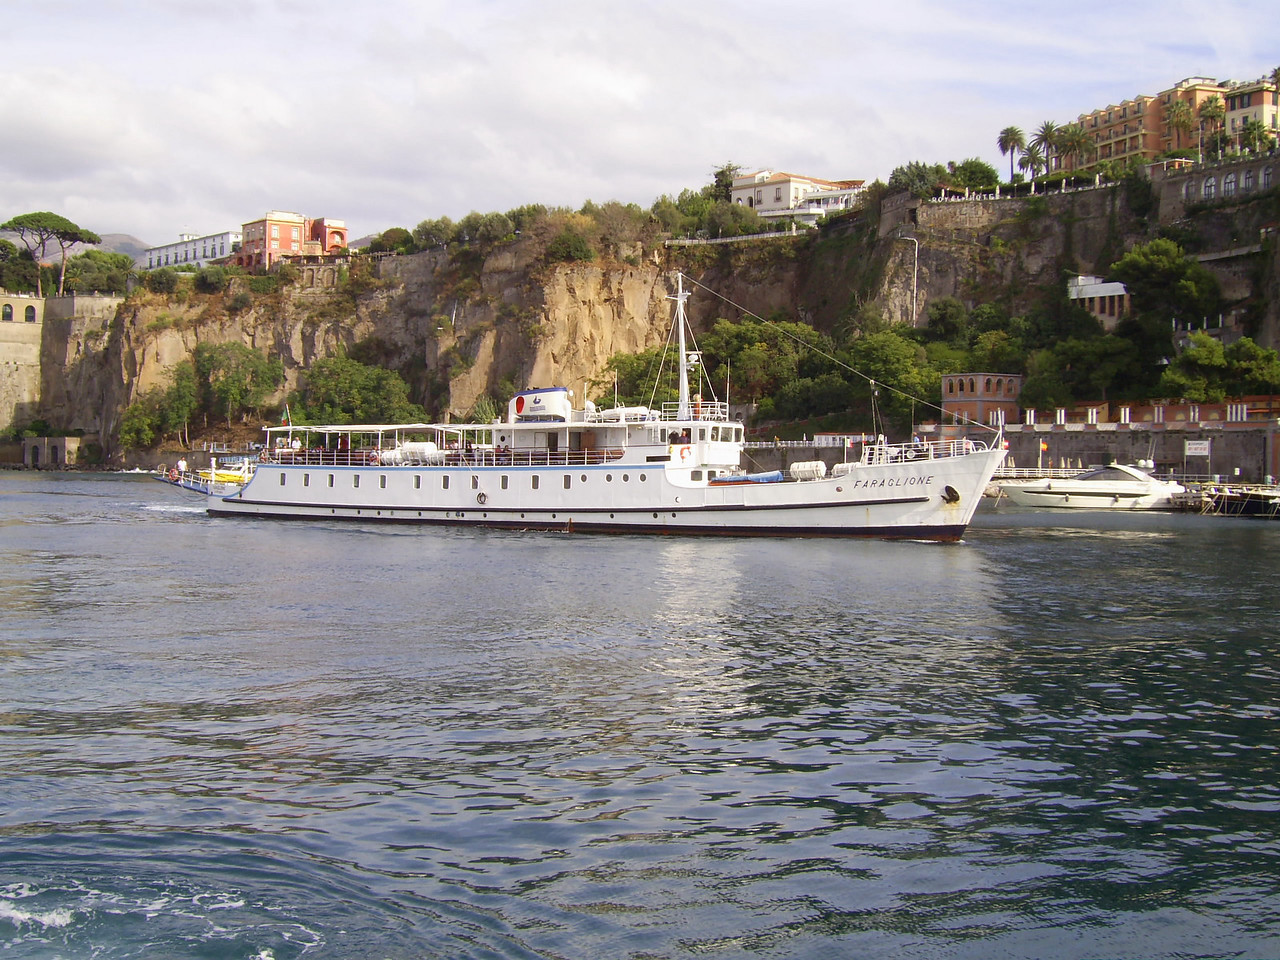 2007 - F/B FARAGLIONE arriving to Sorrento. From 1964 to 2008 the fastest traditional ferry on Sorrento - Capri route.